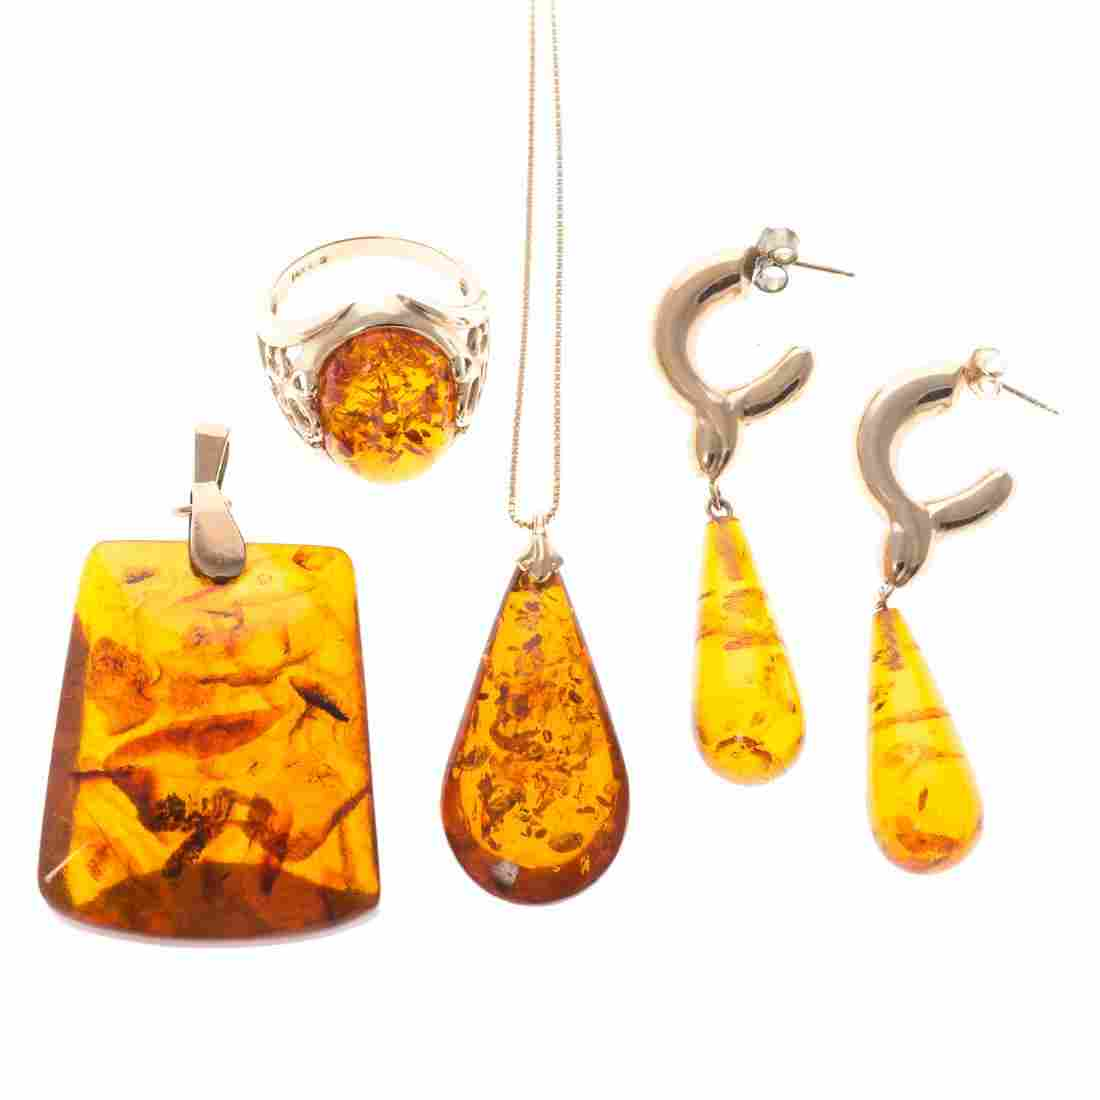 A Lady's Collection of Amber Jewelry in 14K Gold